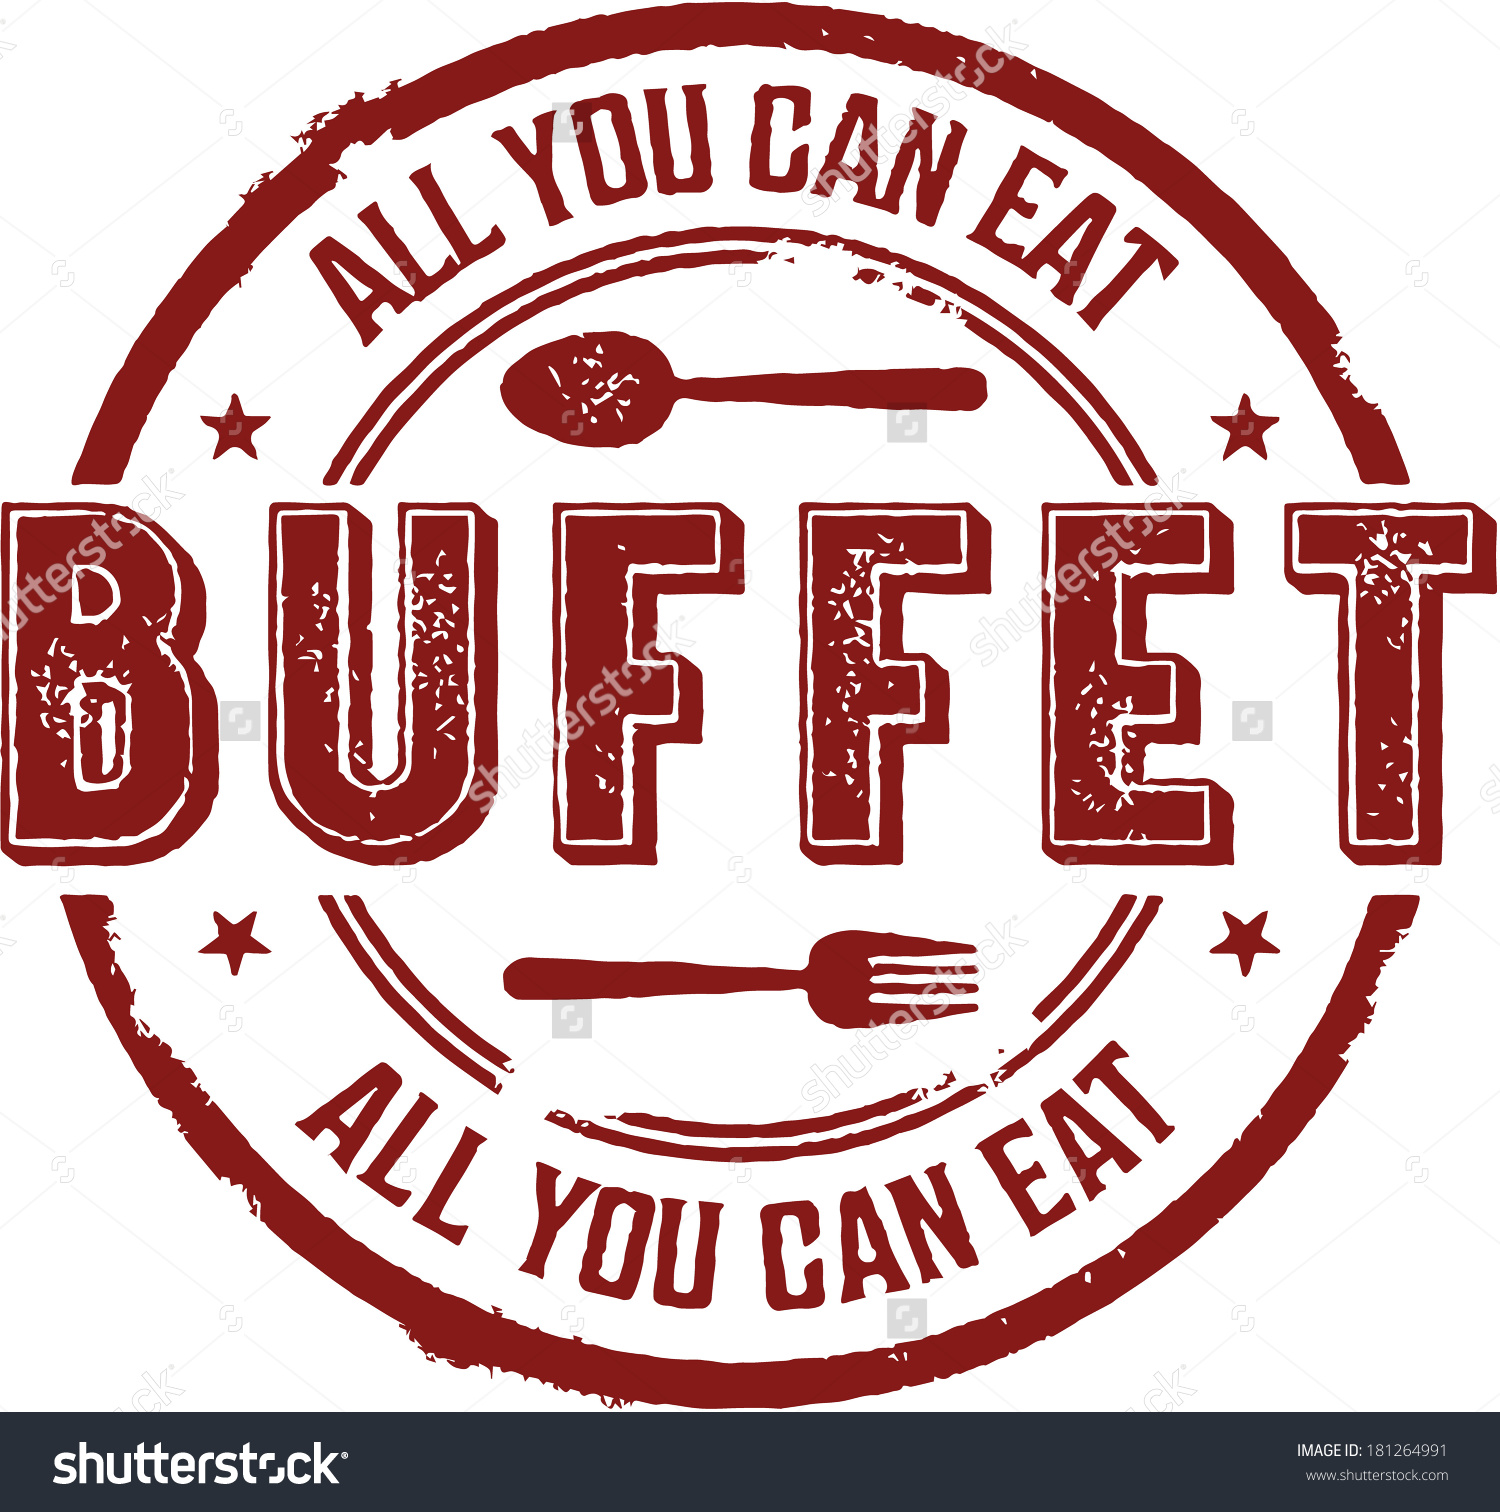 All You Can Eat Buffet Clipart.